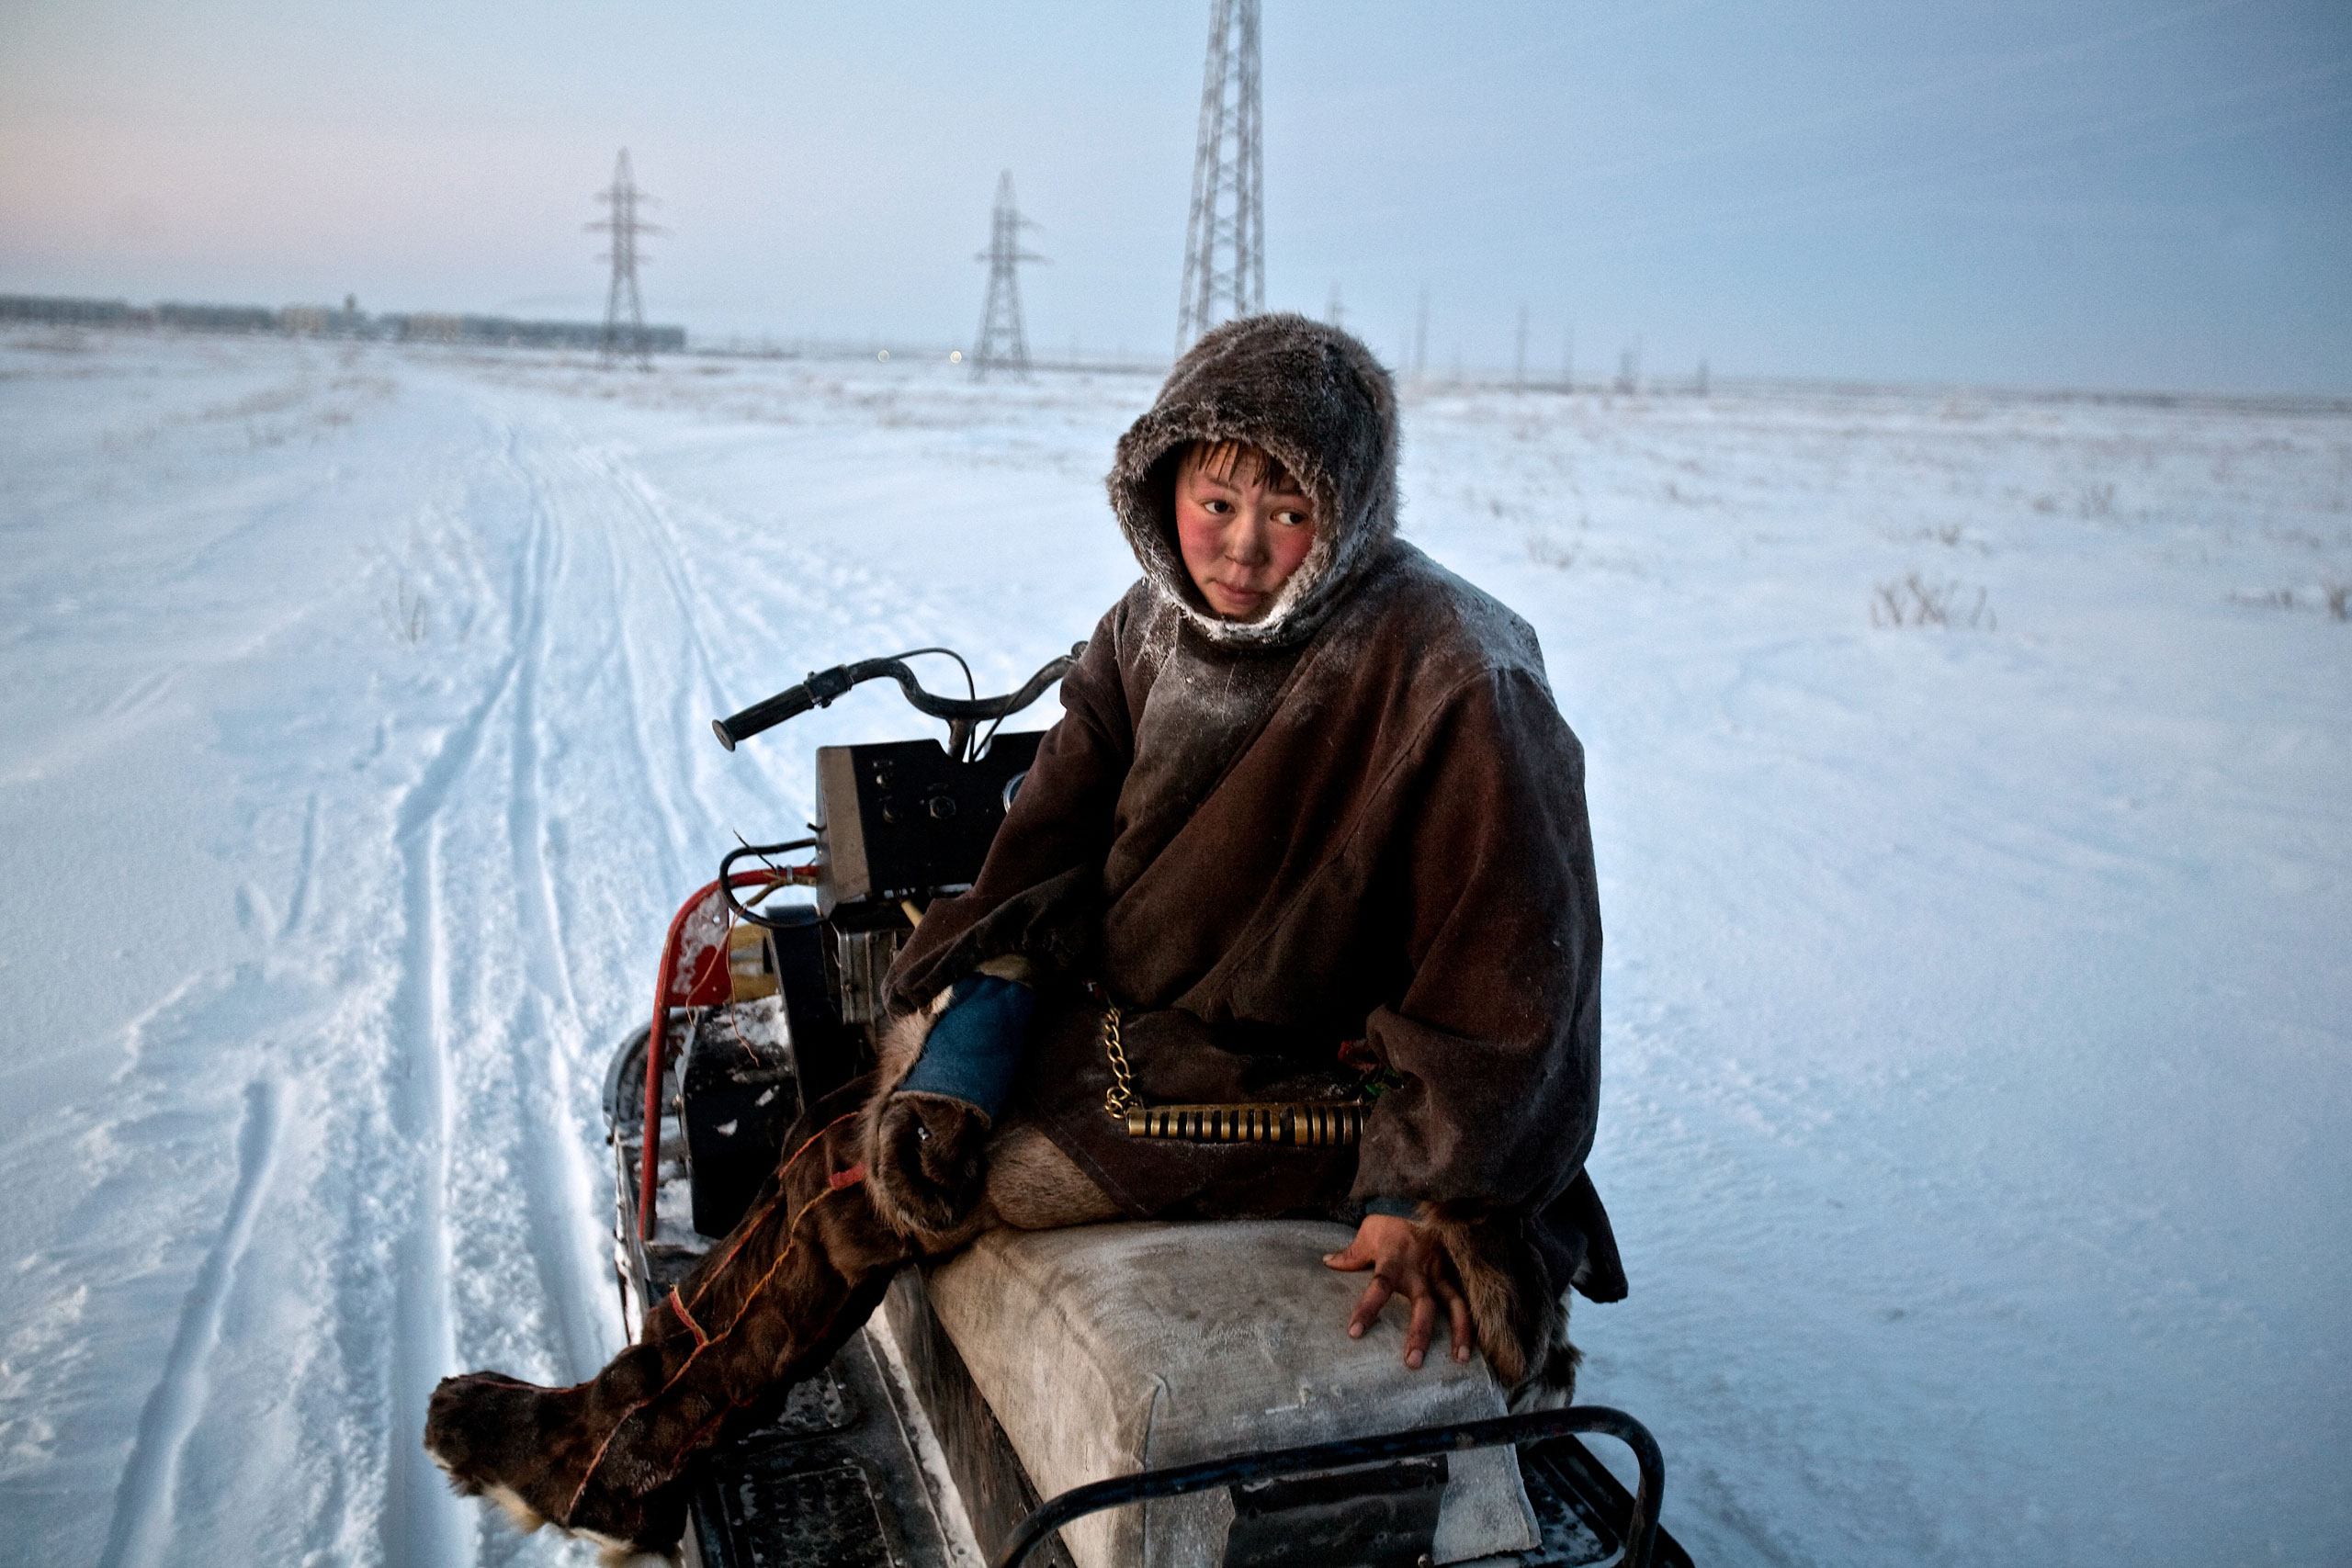 Reindeer herder Simyon travels by sled from his chum towards Vorkuta to buy supplies. Construction of gas pipelines and industrial complexes forces them to travel further afield in search of pastures, January 2009.